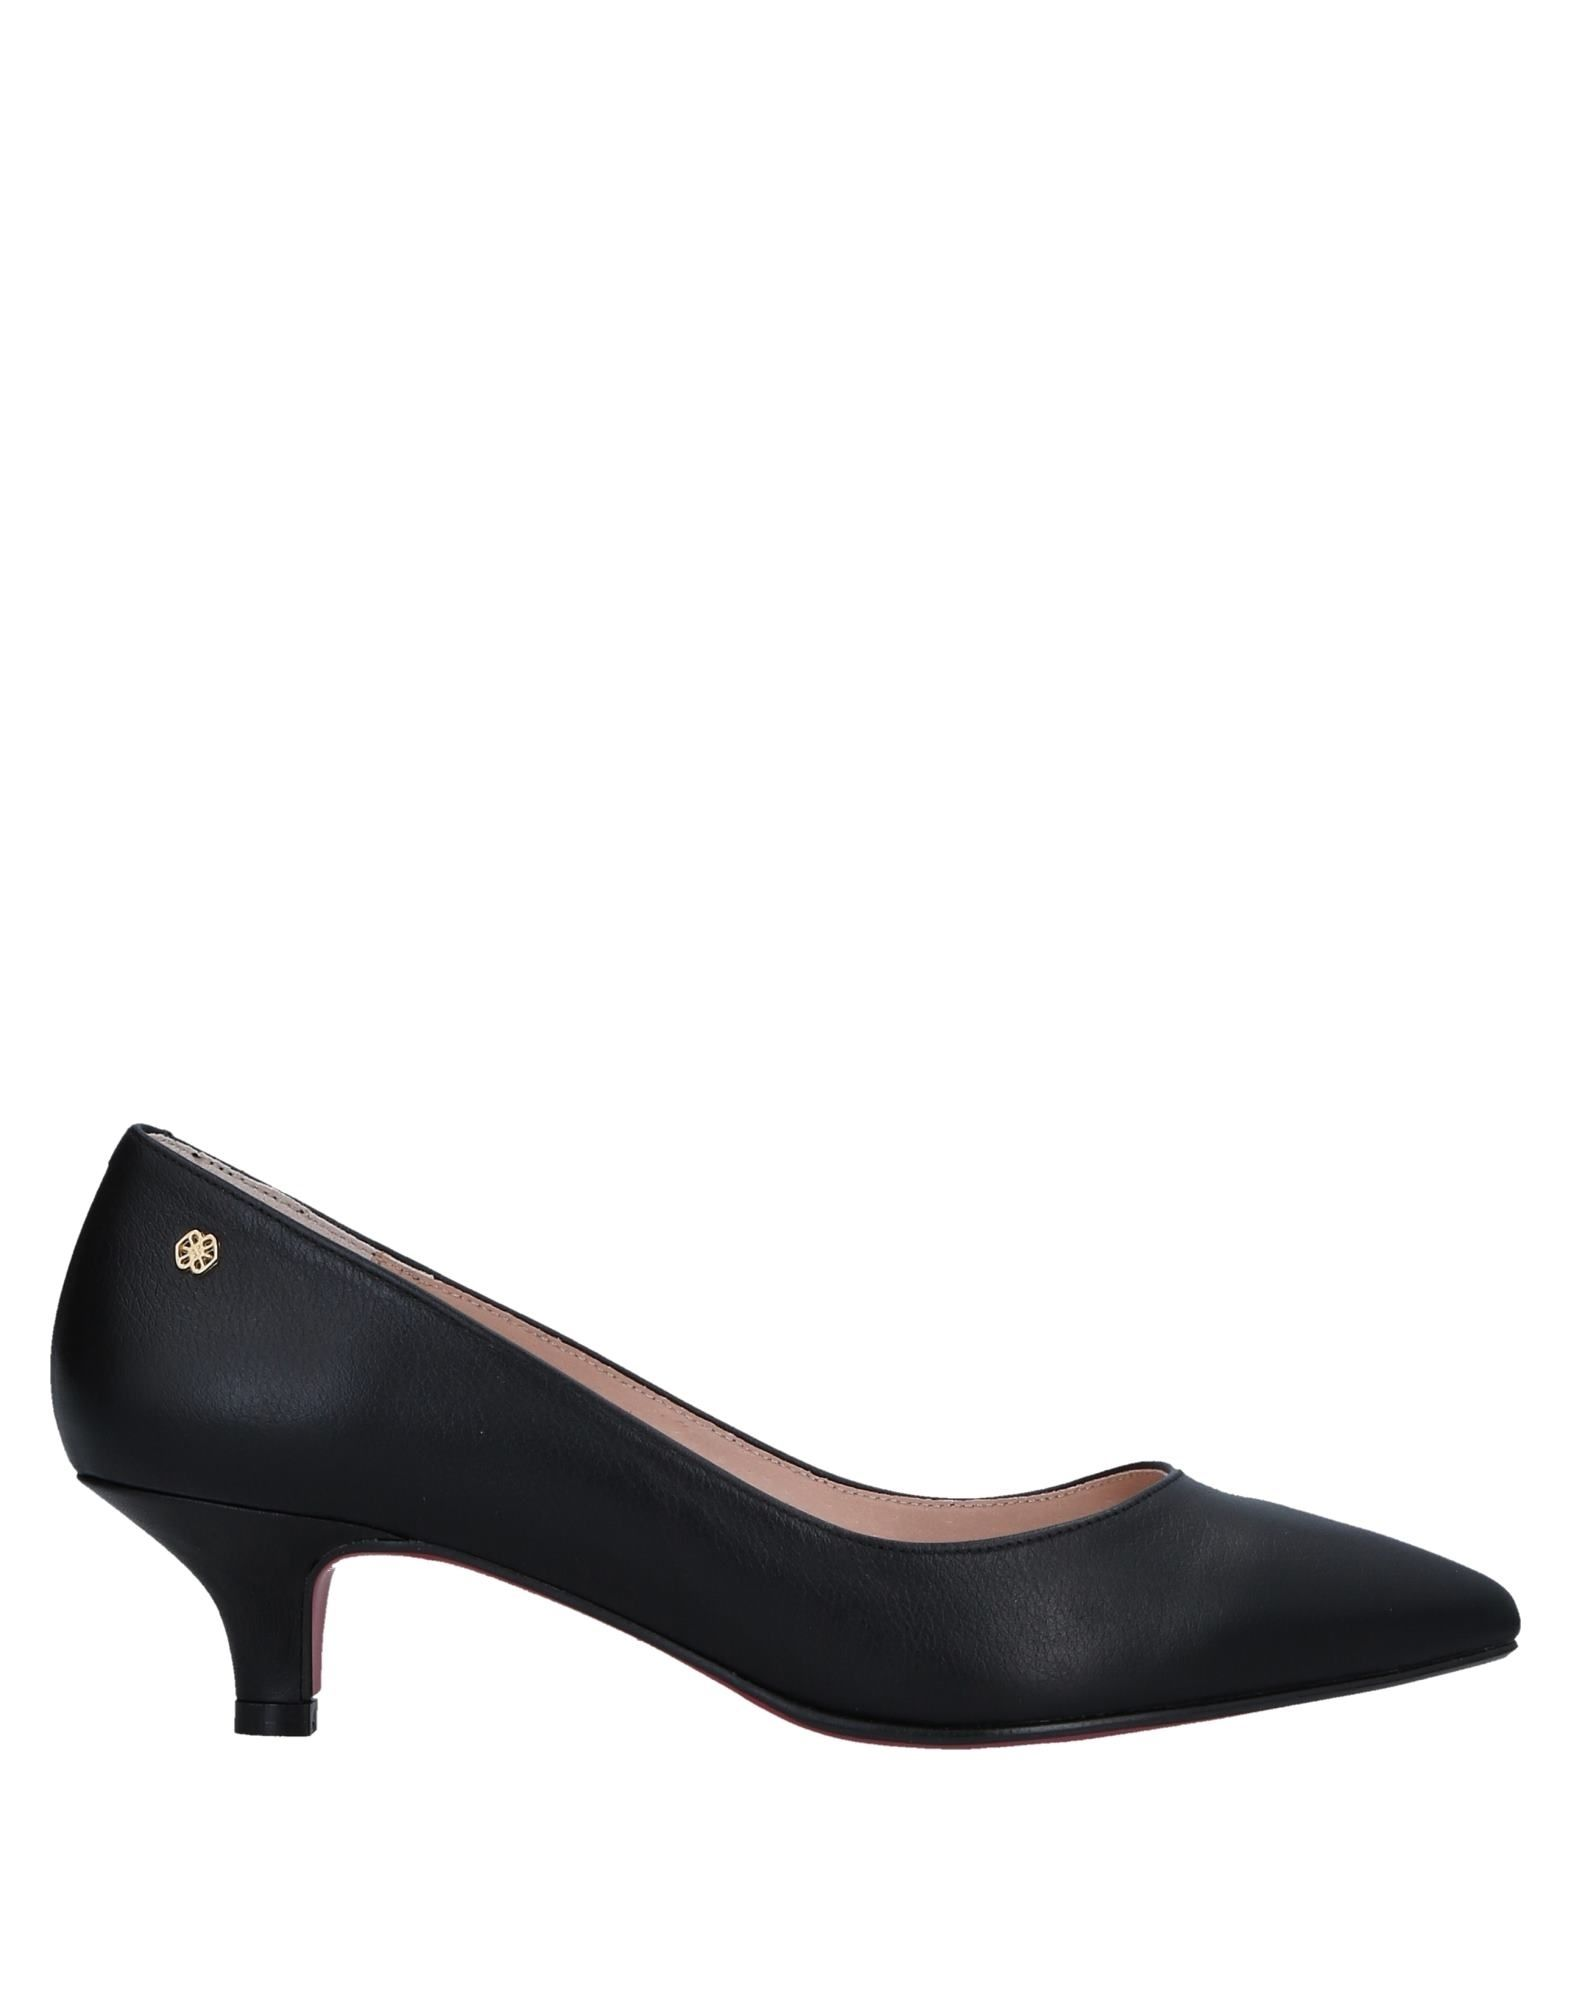 Cuplé Pumps Damen Damen Pumps  11543336HO  063483